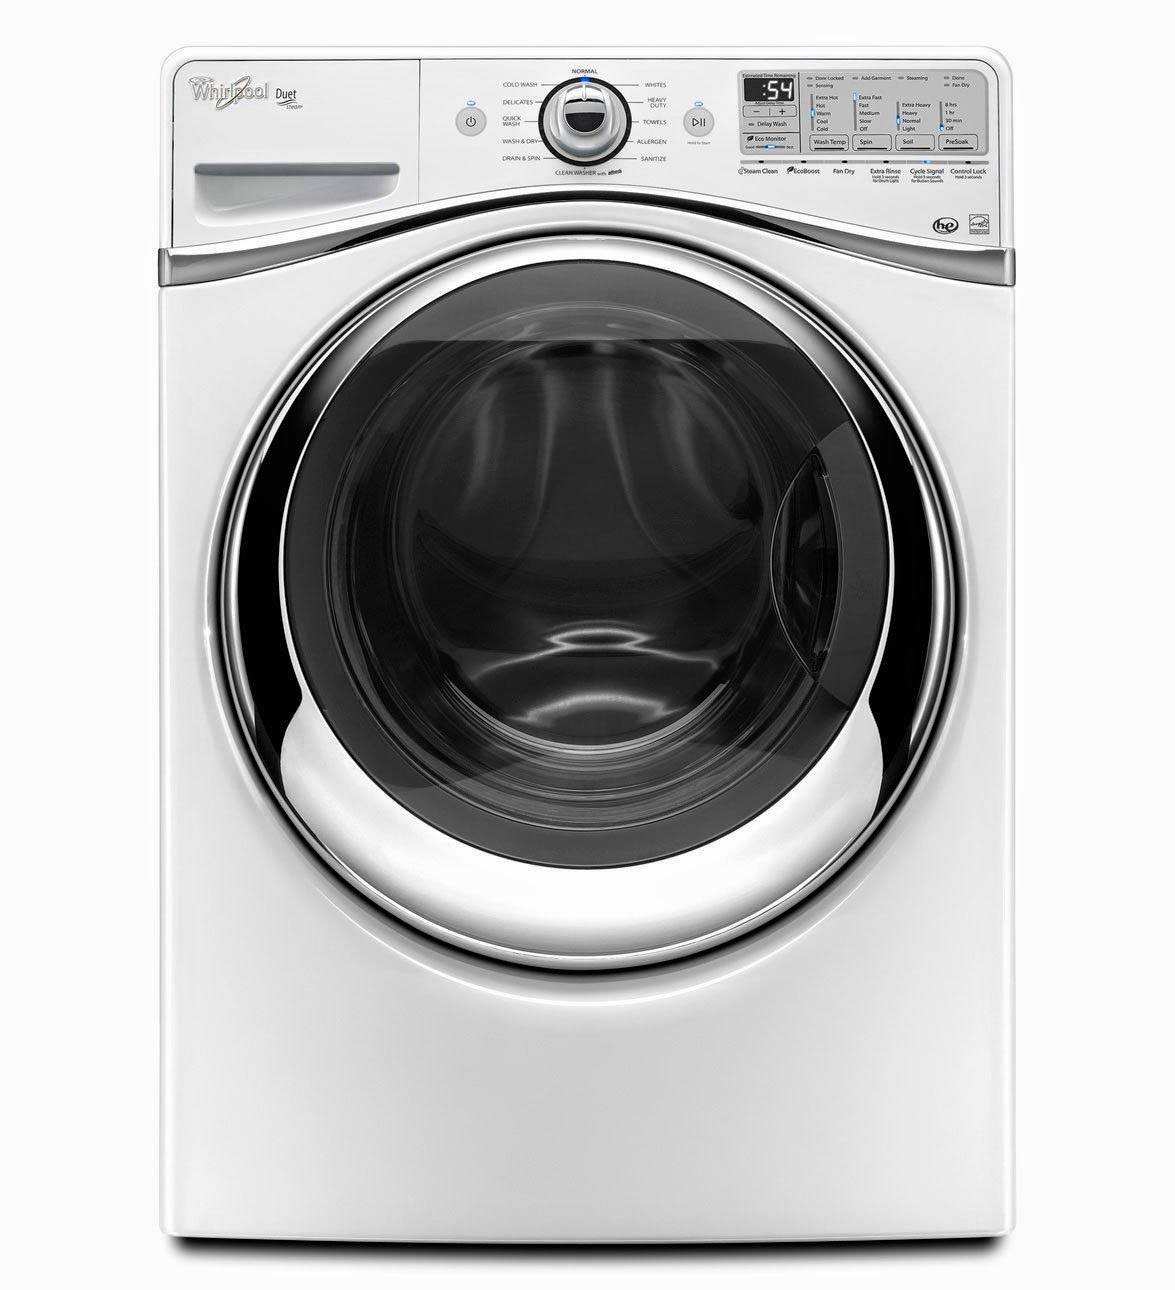 Whirlpool duet washer and dryer - Whirlpool duet washer and dryer ...